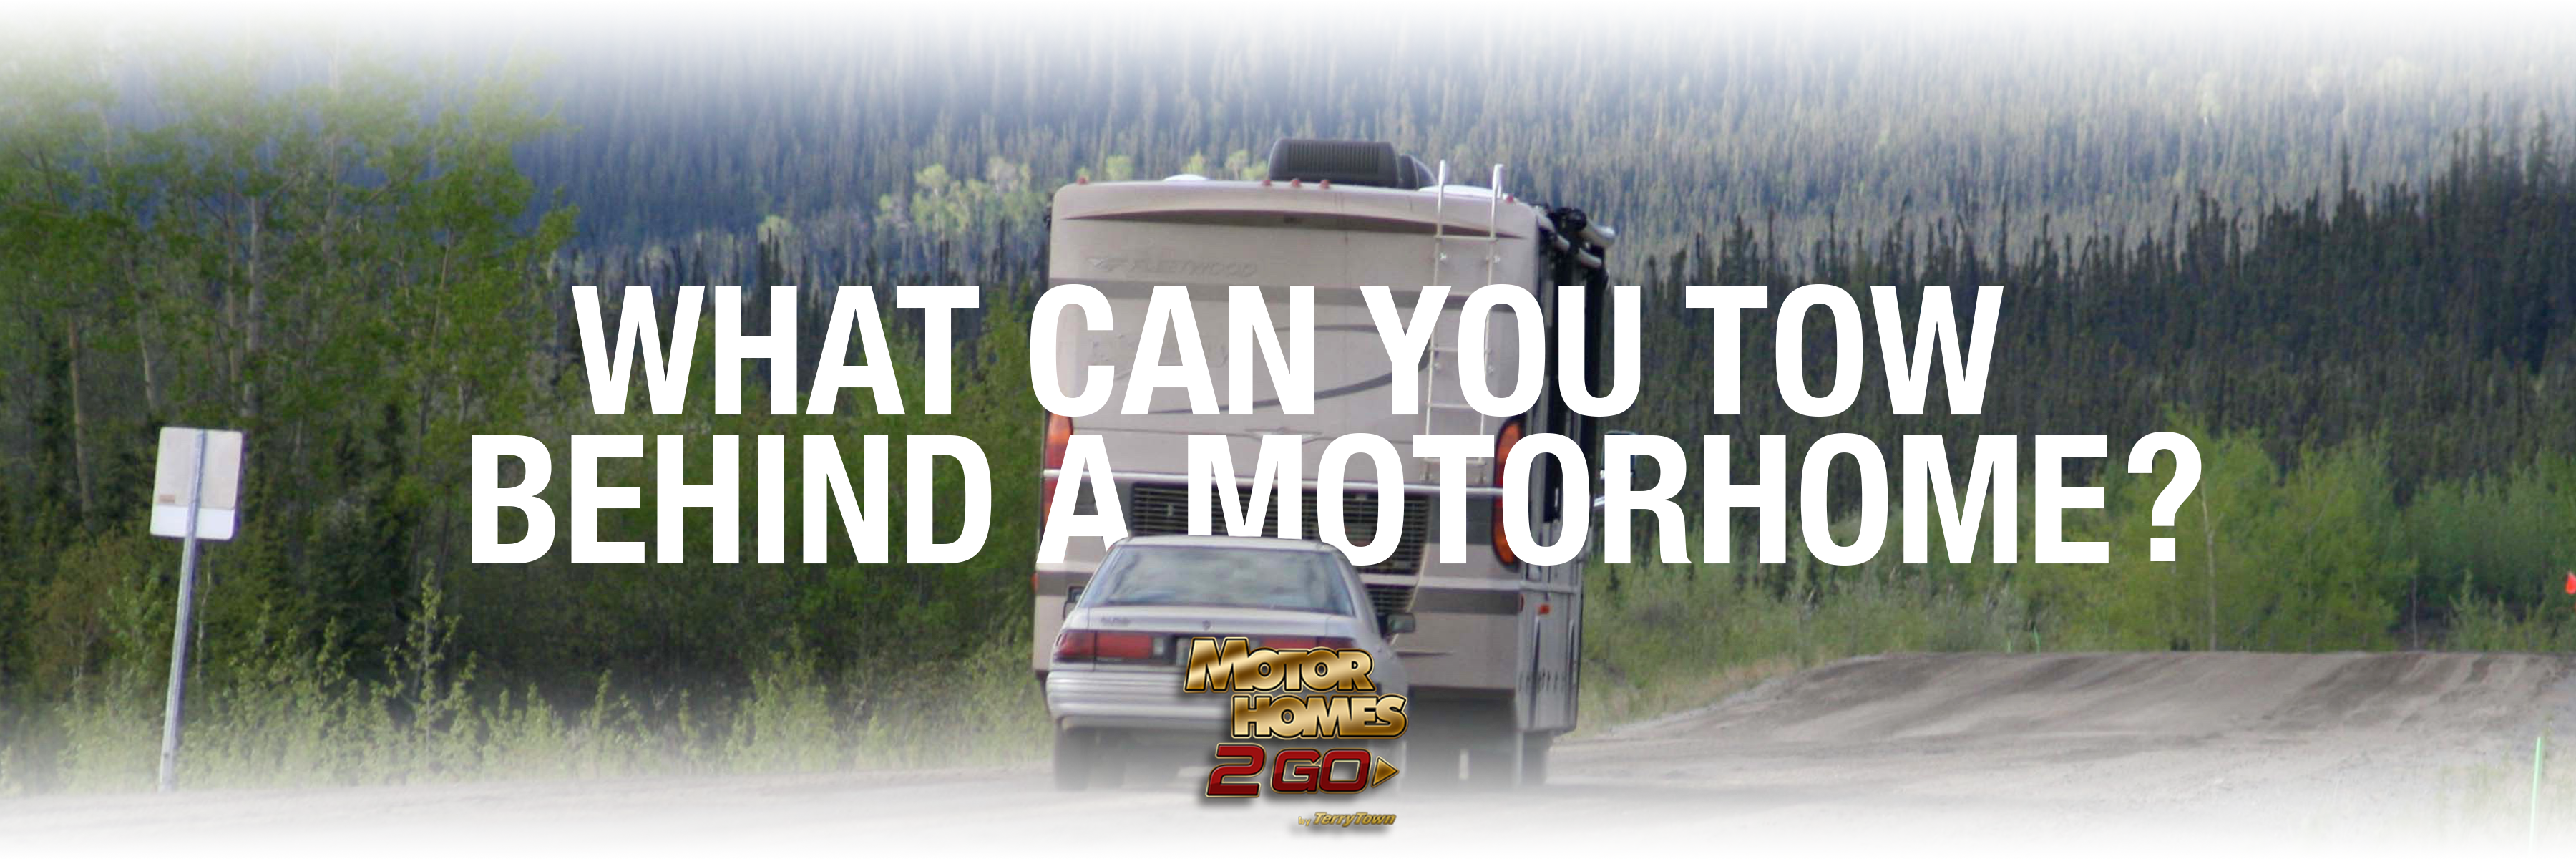 What can you tow behind a motorhome? Banner